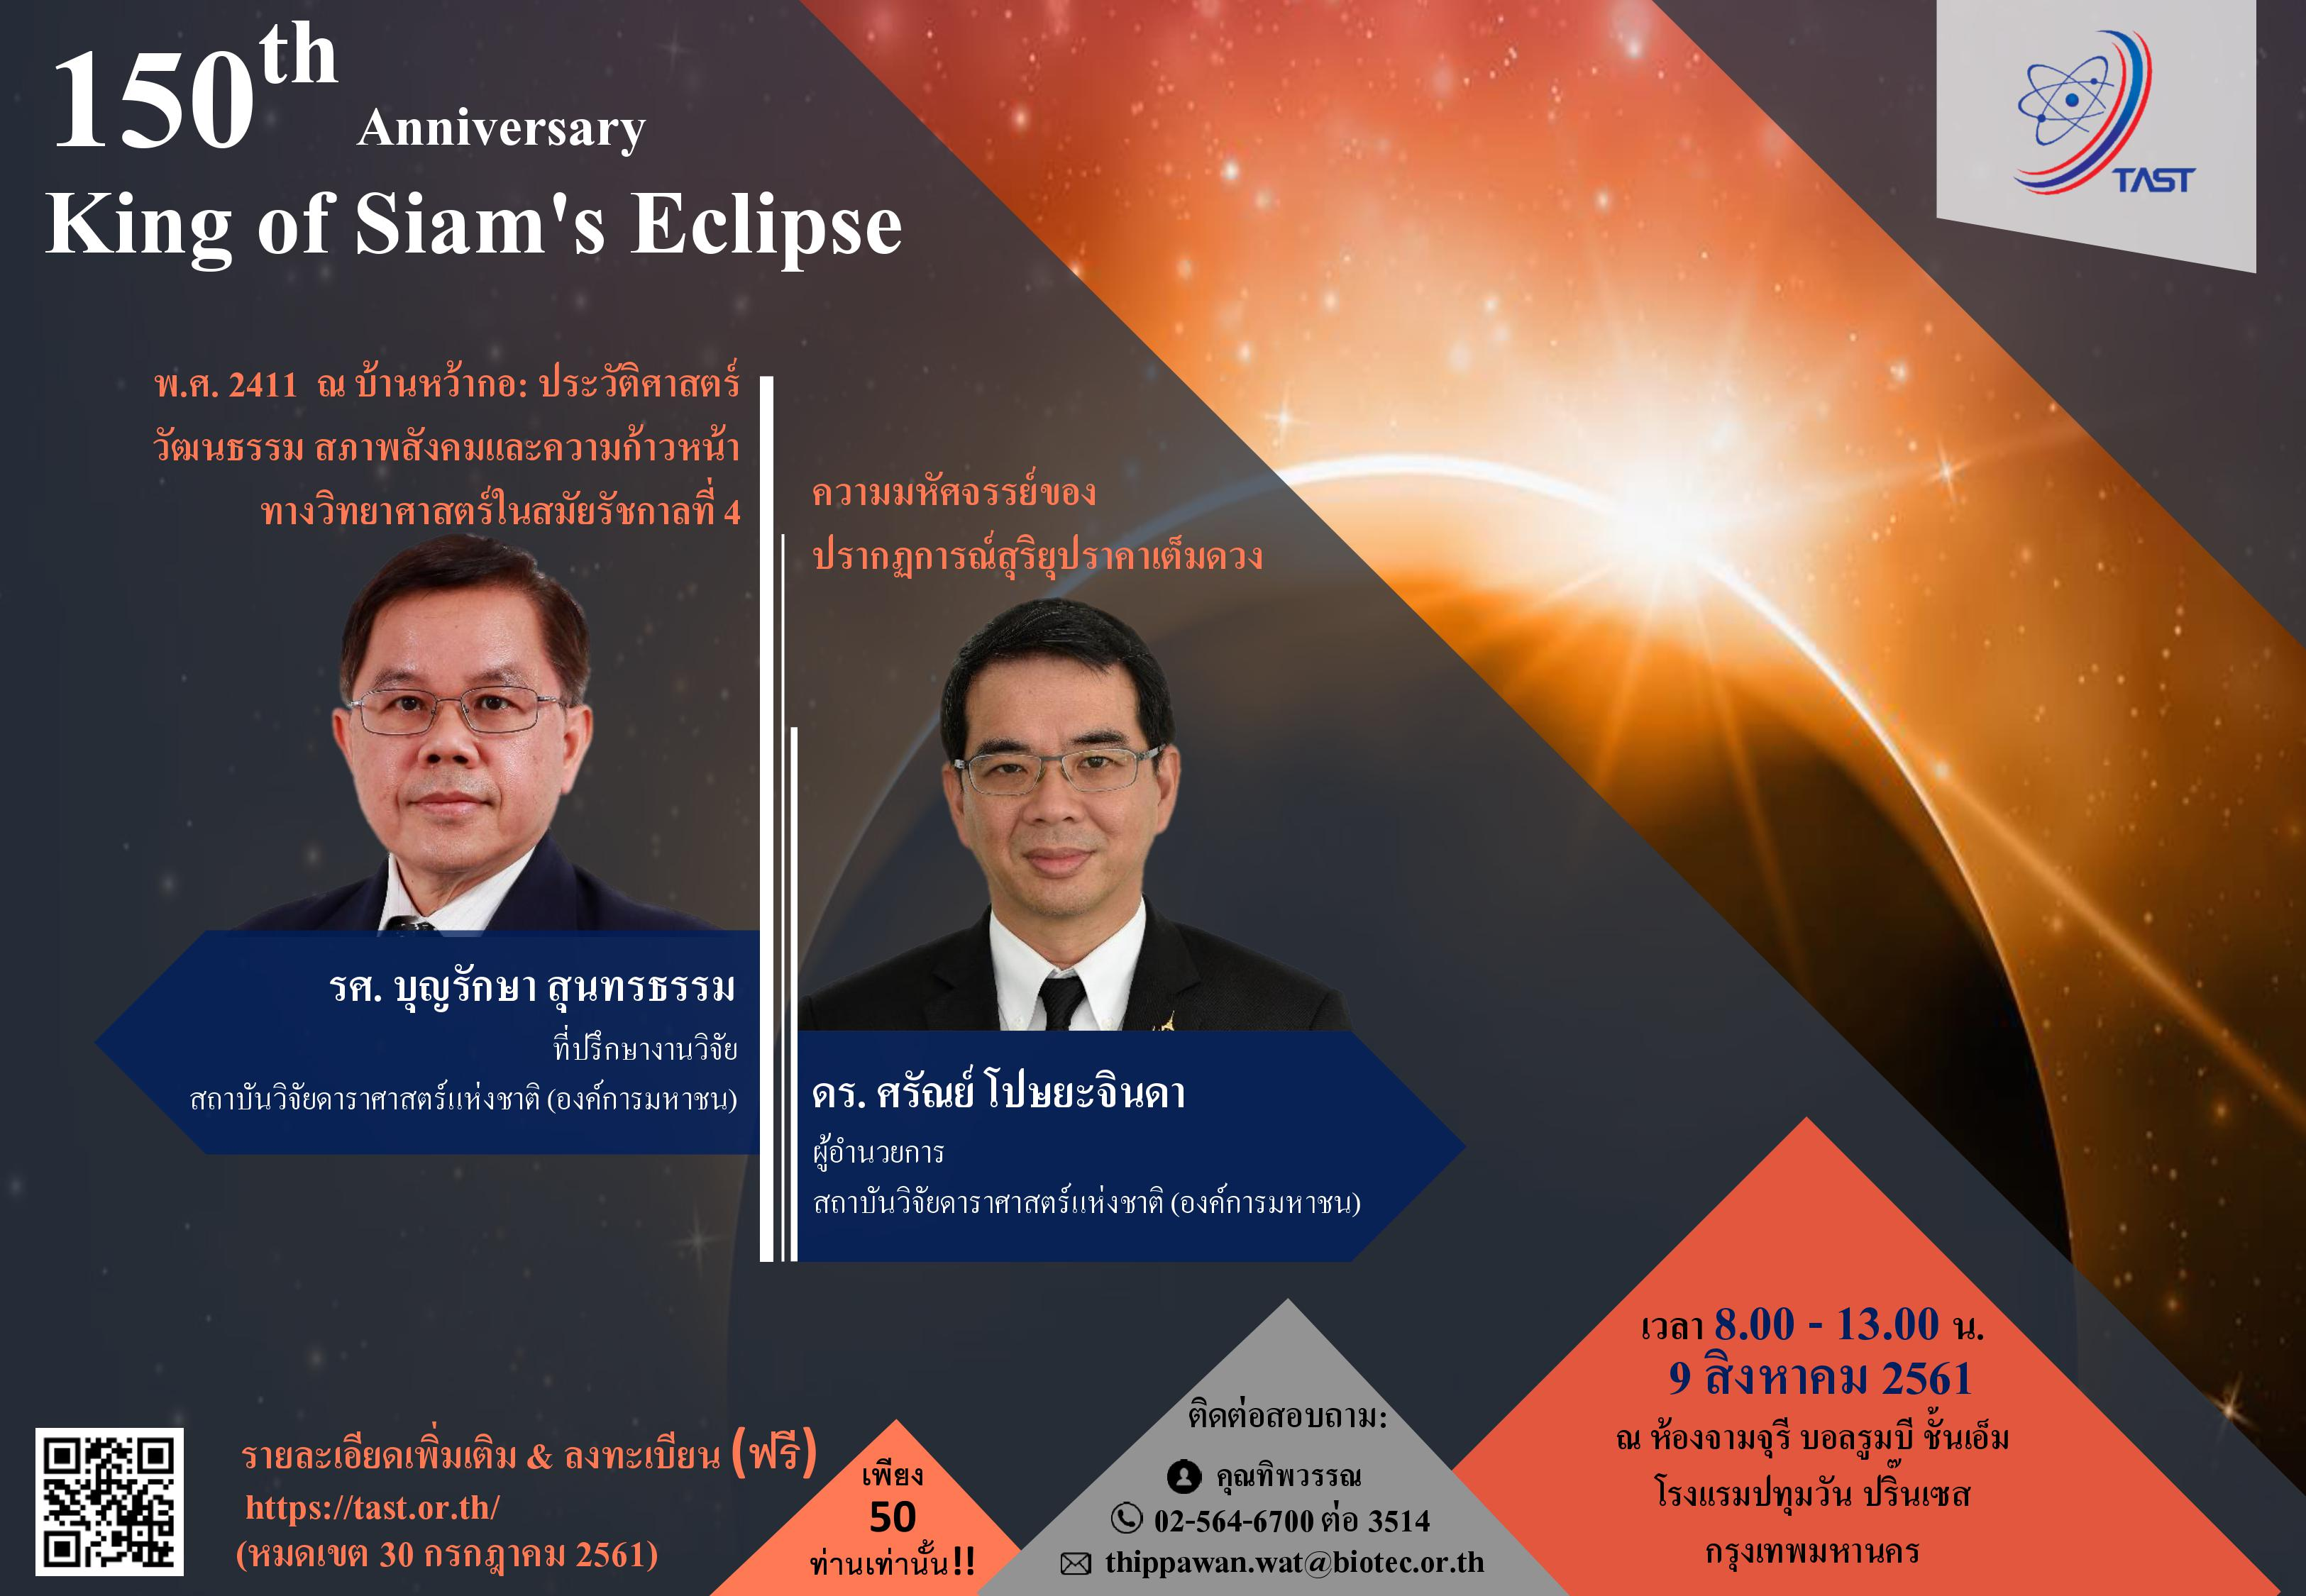 150th Anniversary King of Siam's Eclipse